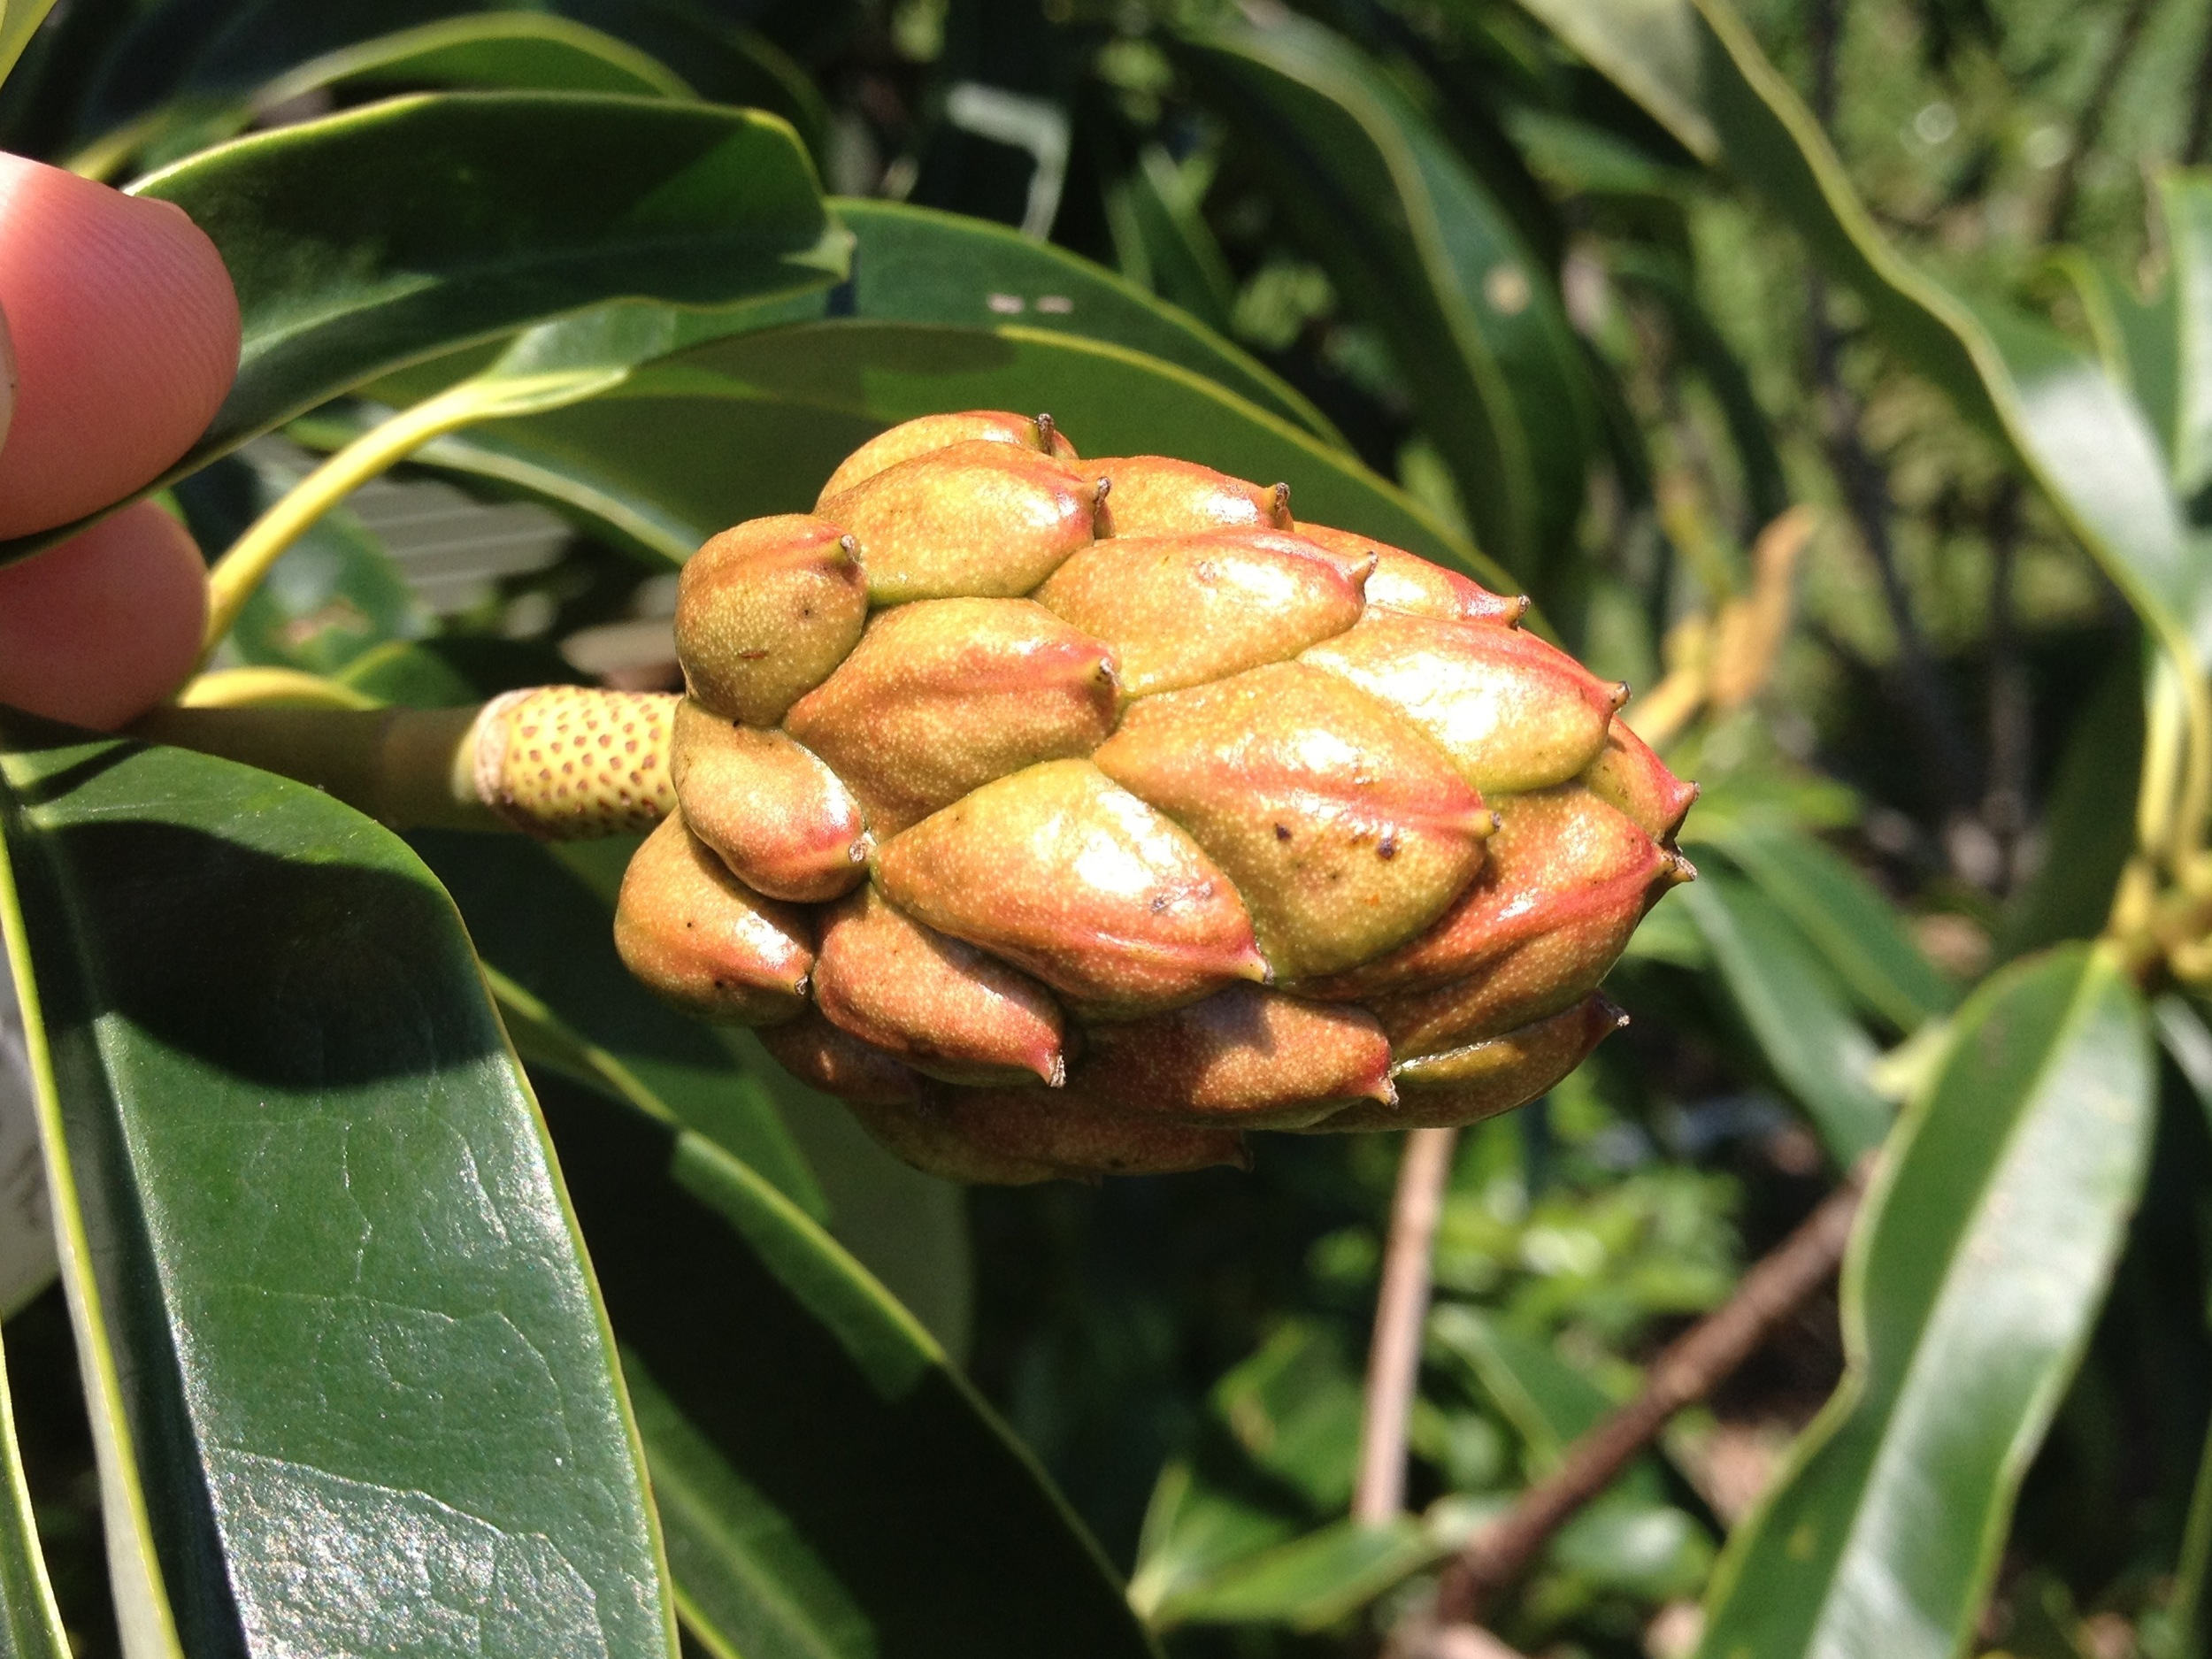 The seedpod is looking good on this Magnolia lotungensis x M. yuyuanensis cross.